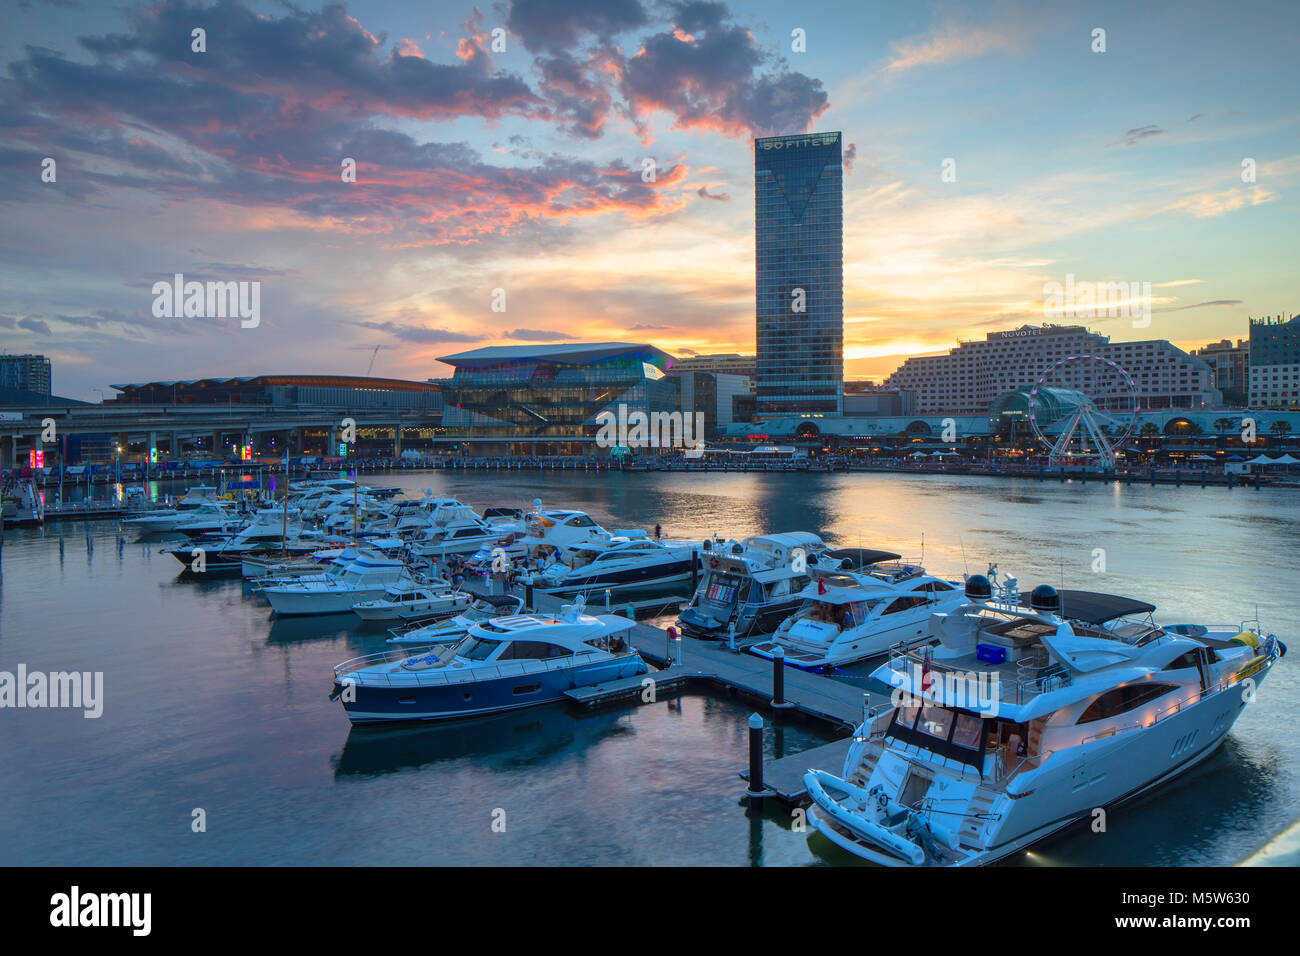 Sofitel Hotel and International Convention Centre at sunset, Darling Harbour, Sydney, New South Wales, Australia - Stock Image